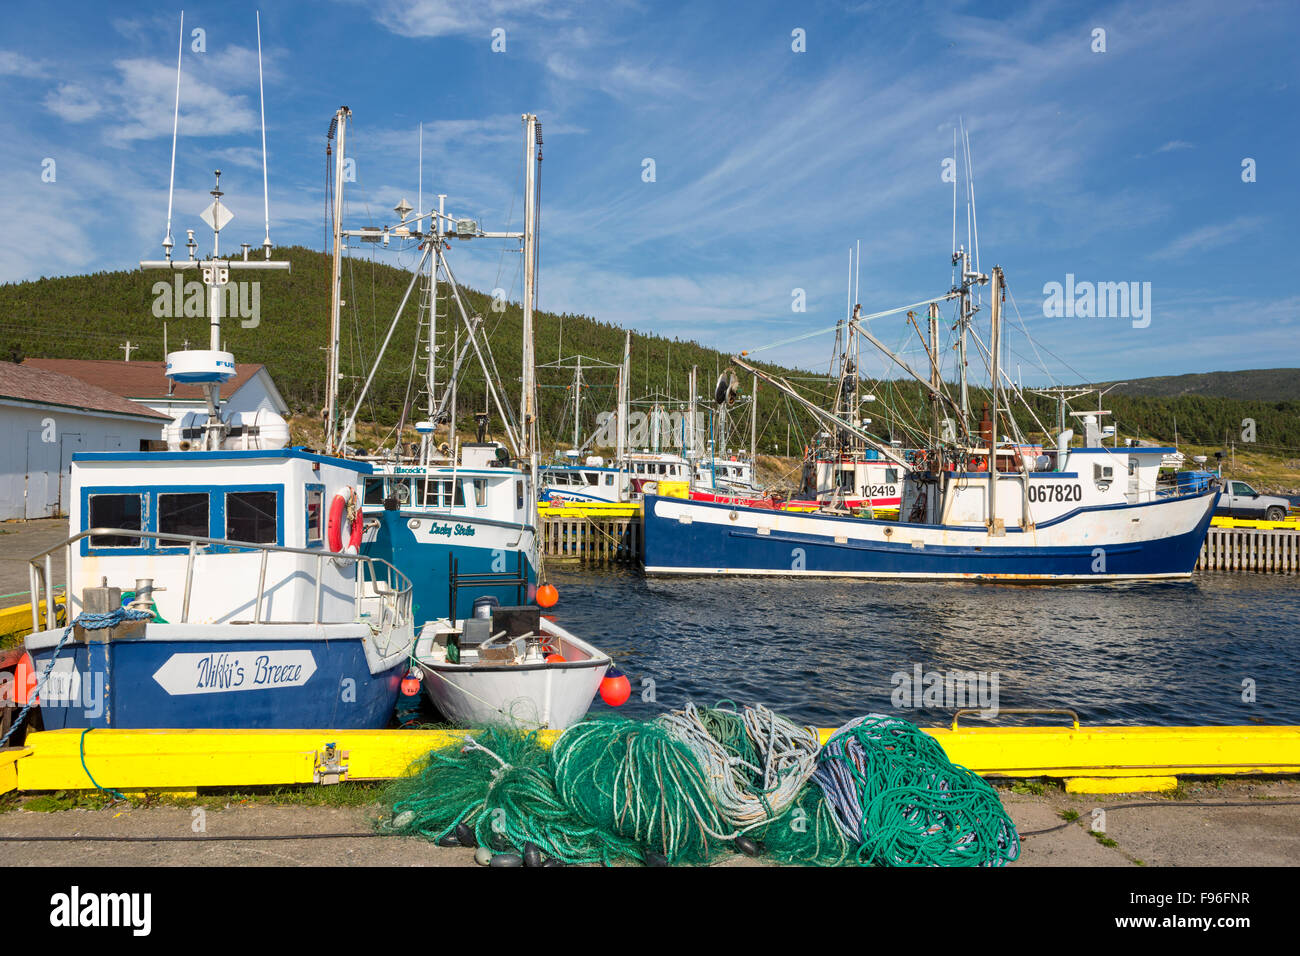 Fishing boats tied up at wharf, Heart's Content, Newfoundland, Canada - Stock Image